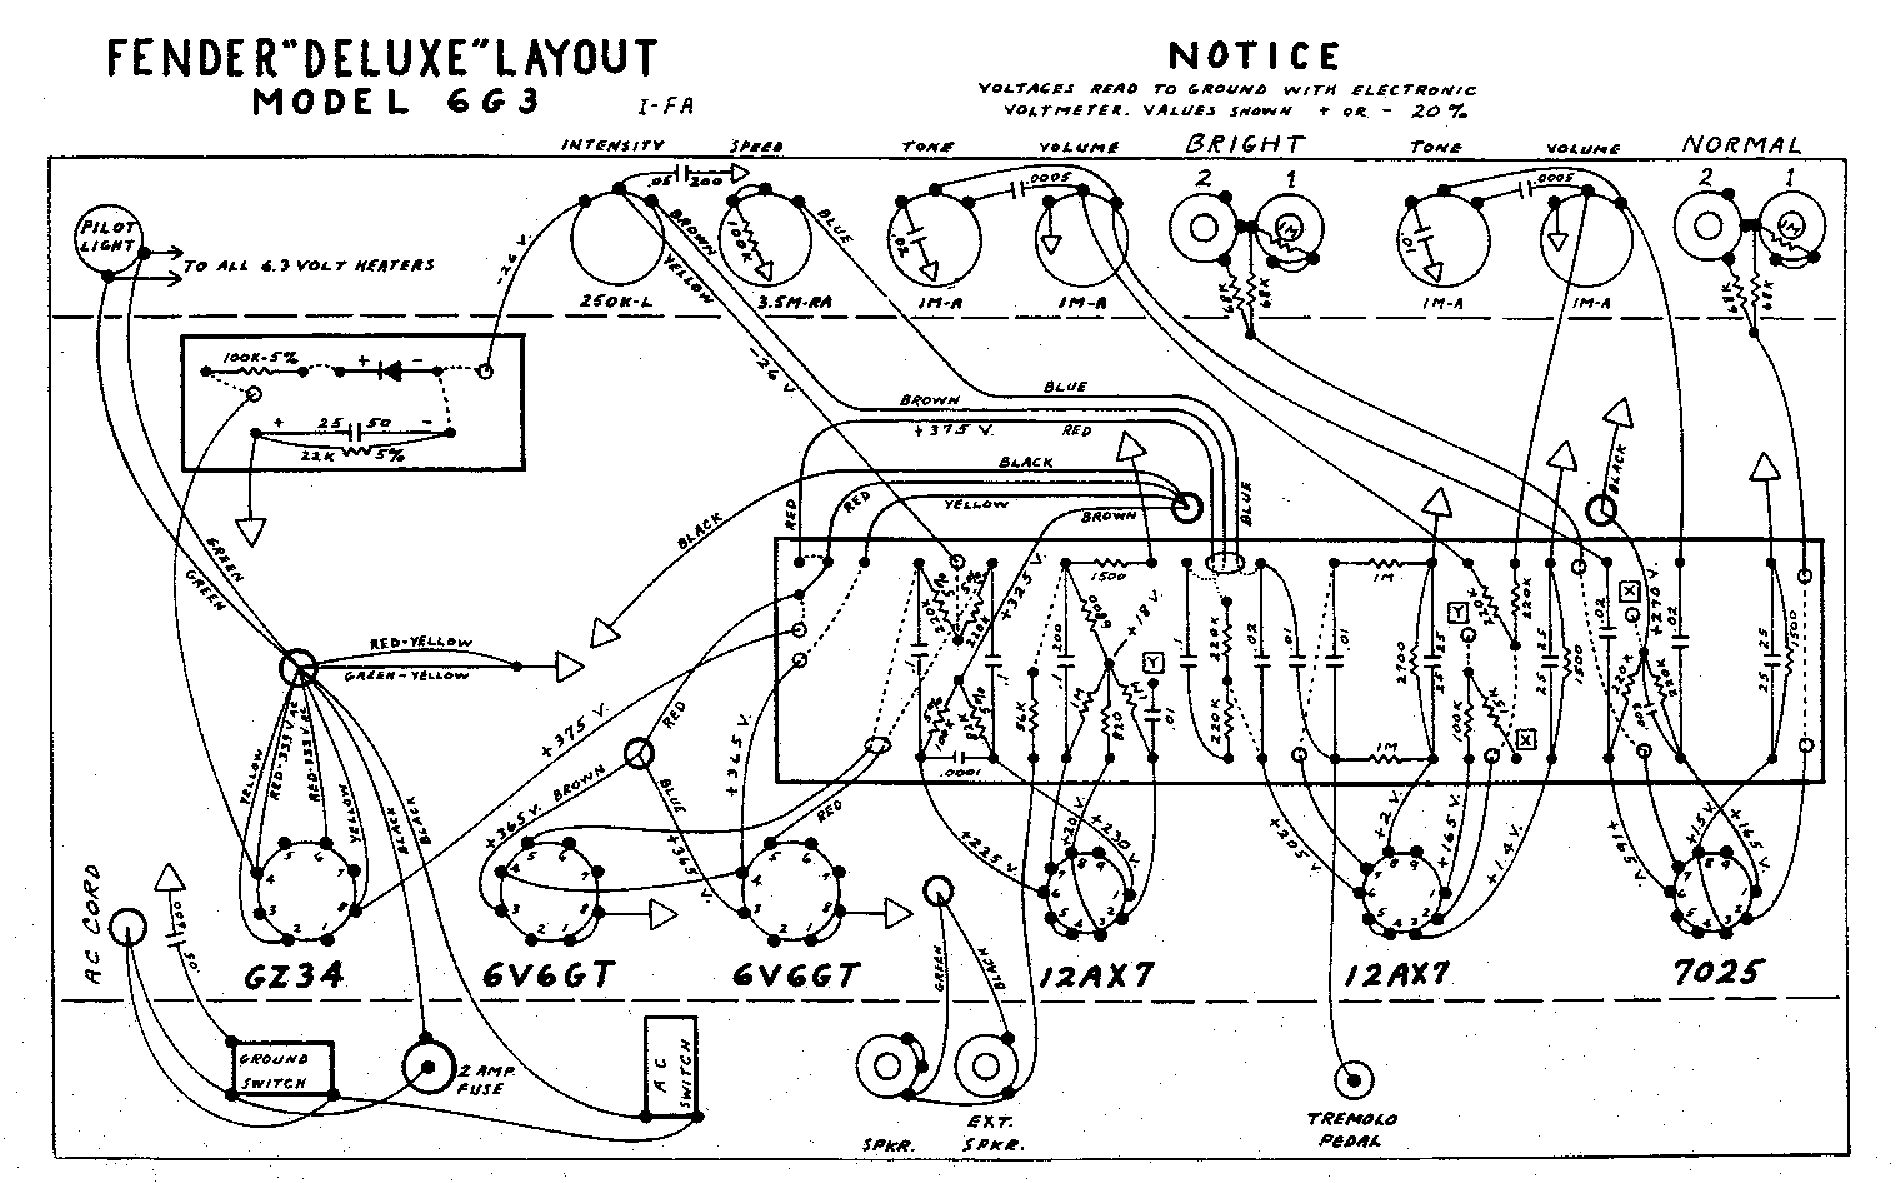 Fender Telecaster Deluxe Wiring Diagram American Kay Guitar Old Fashioned Diagrams Inspiration 72 Tele Funky